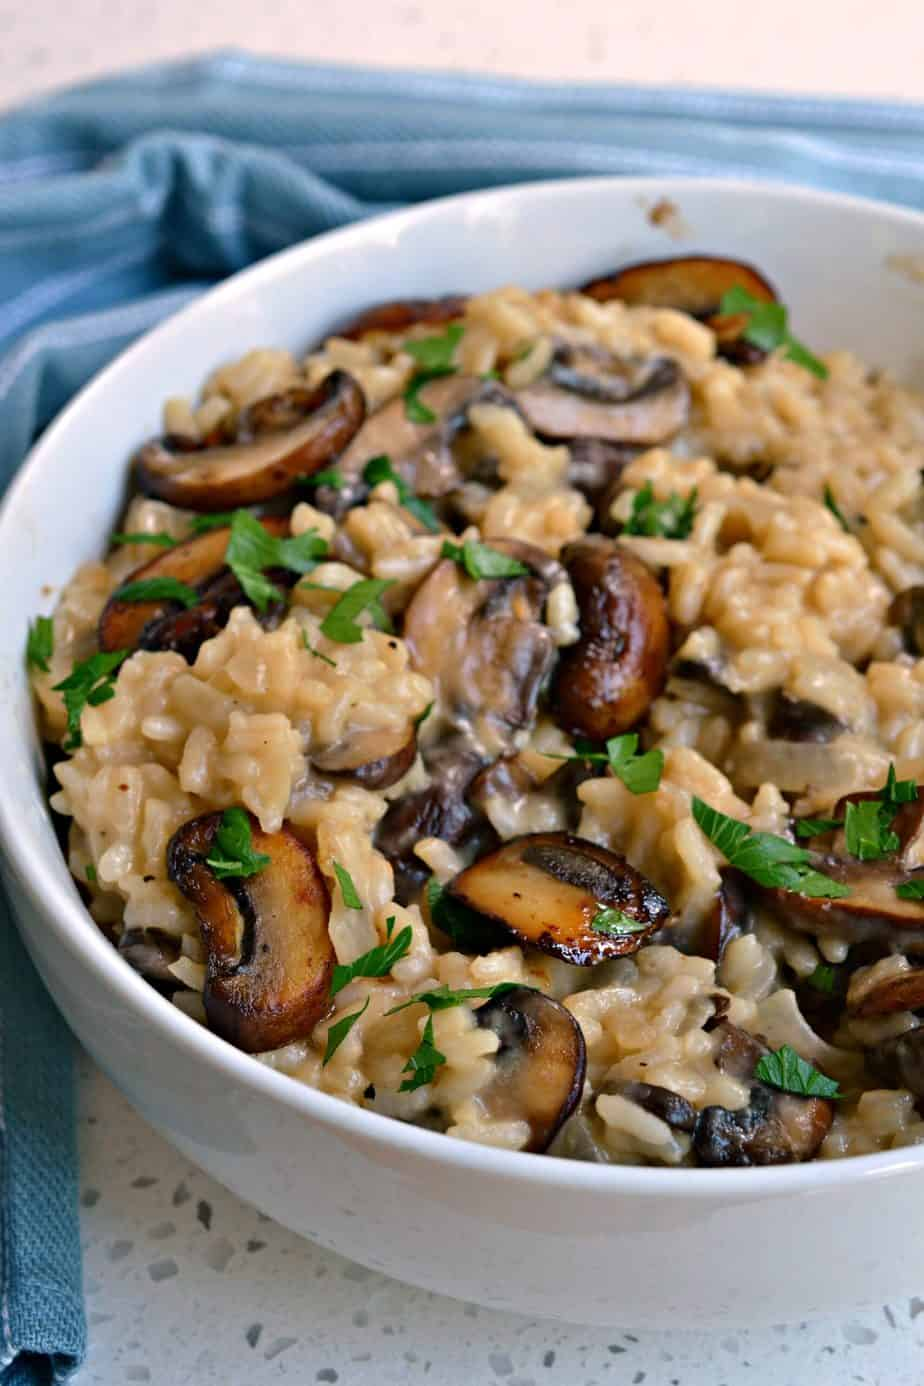 Cook this creamy and luscious Mushroom Risotto made just a like a five star restaurant.